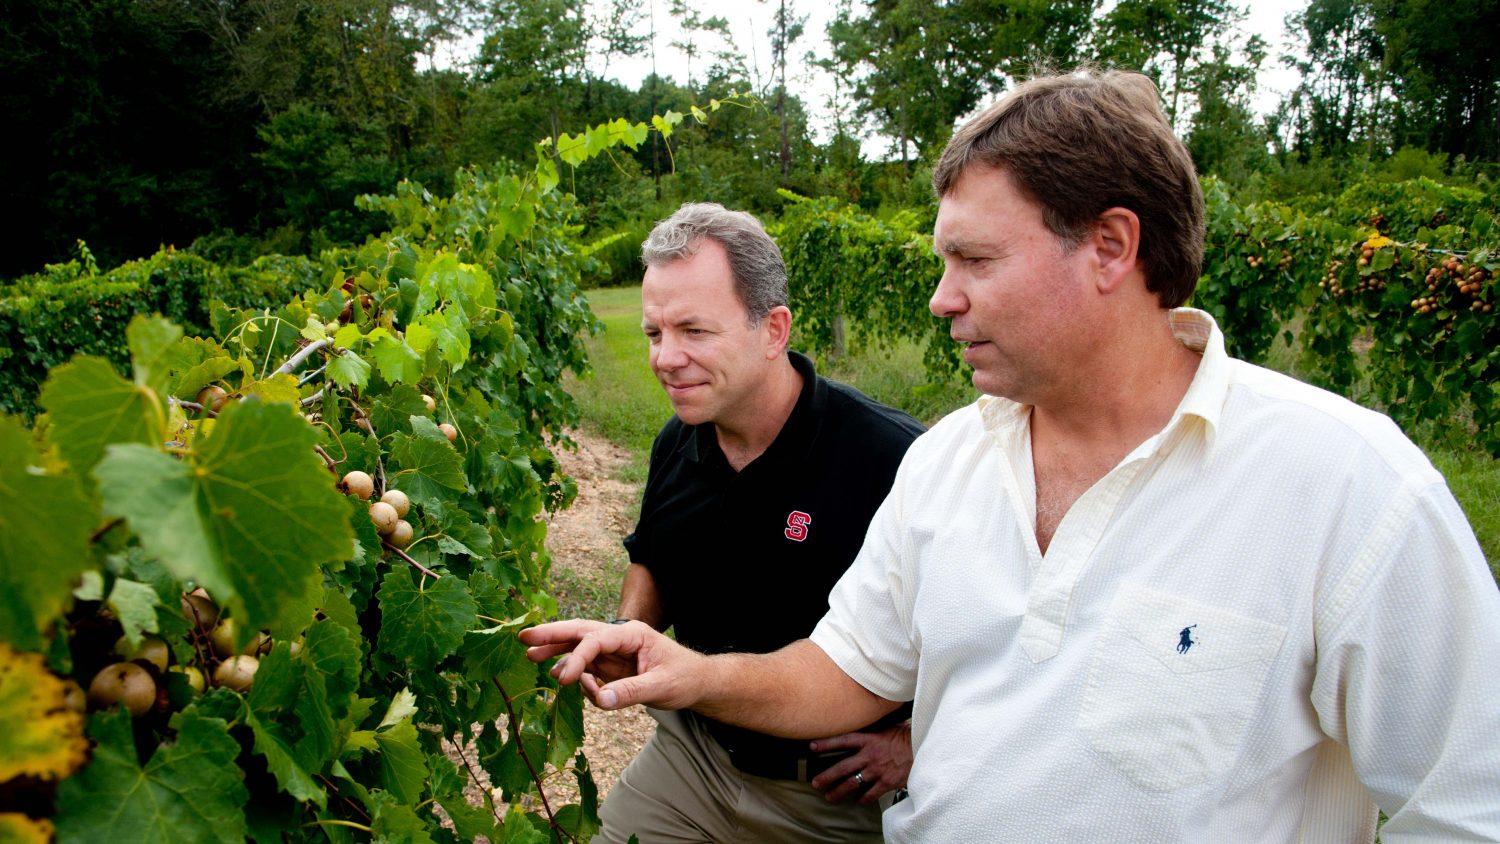 Two men check on muscadine grapes in a field.